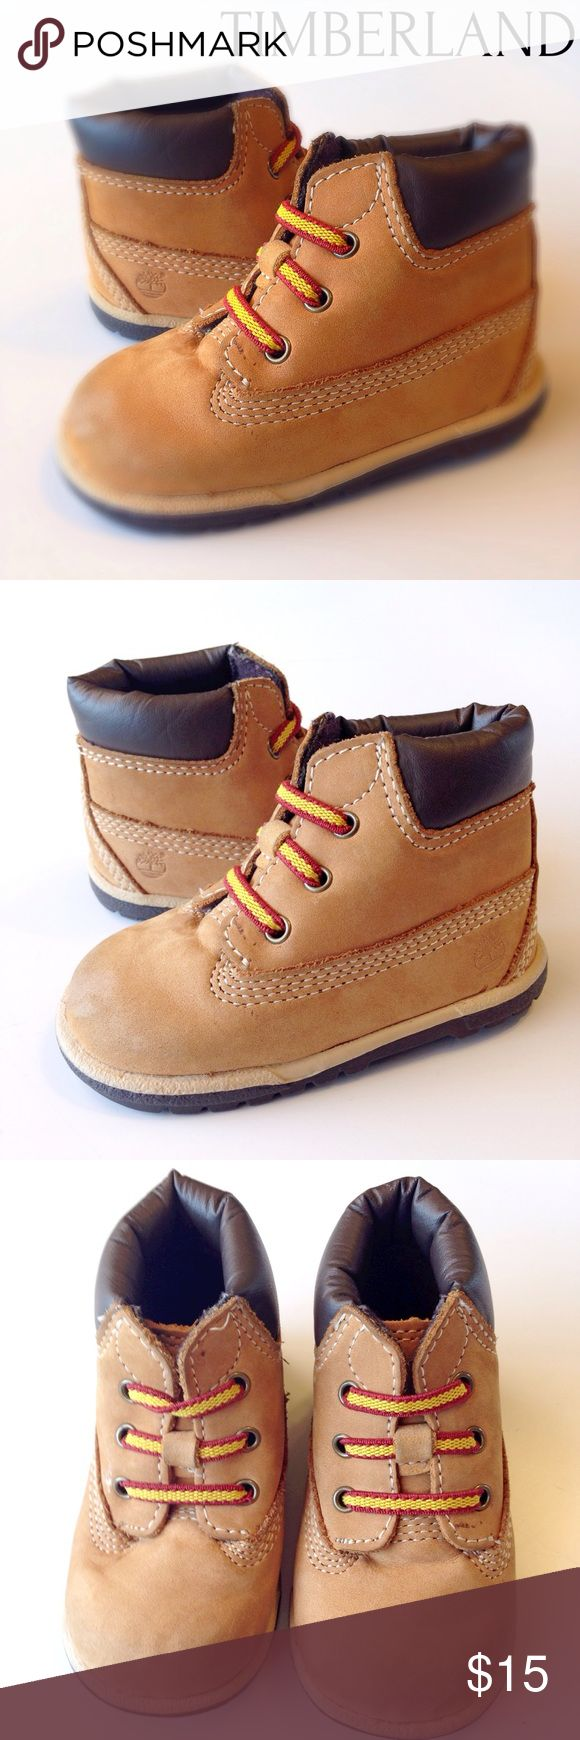 Infant Timberland Boots Size 3 Slight darkening on toes. See pics.  Otherwise in excellent condition! Timberland Shoes Boots